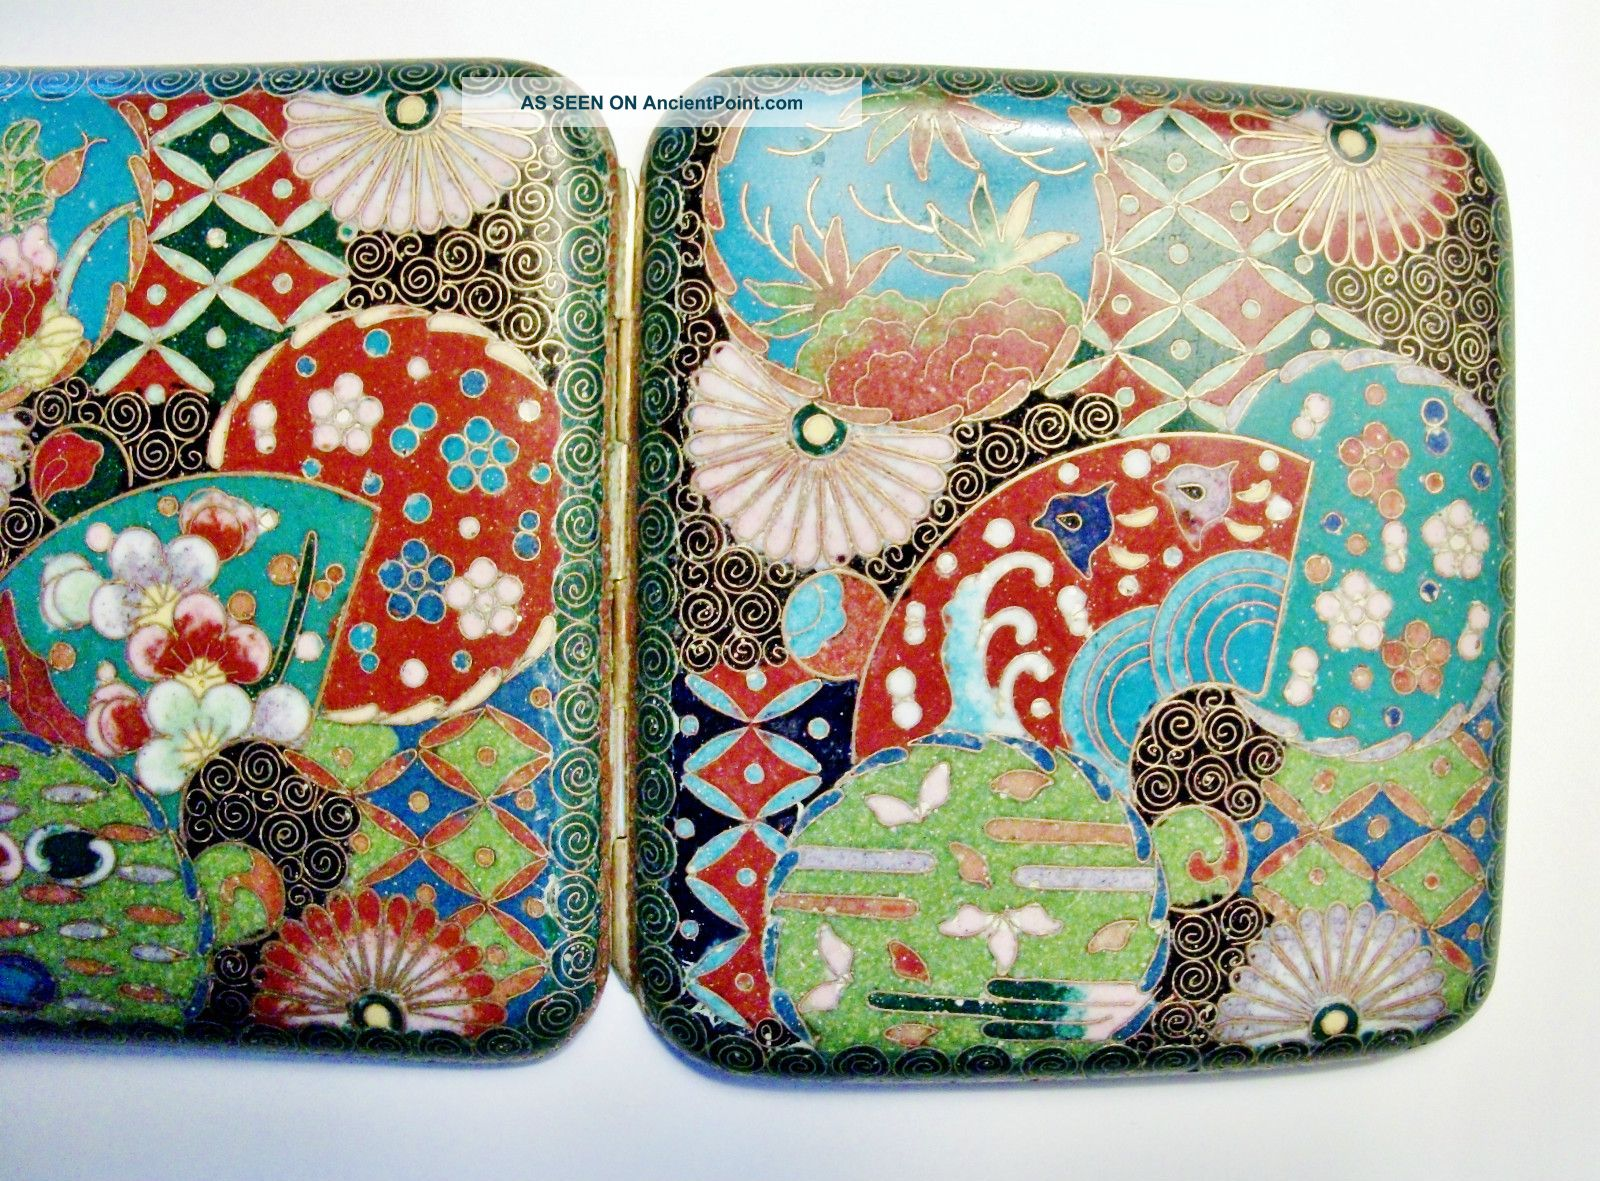 Chinese Antique Cloisonne Cig Case - Excellent Craftsmanship - Quality Art Boxes photo